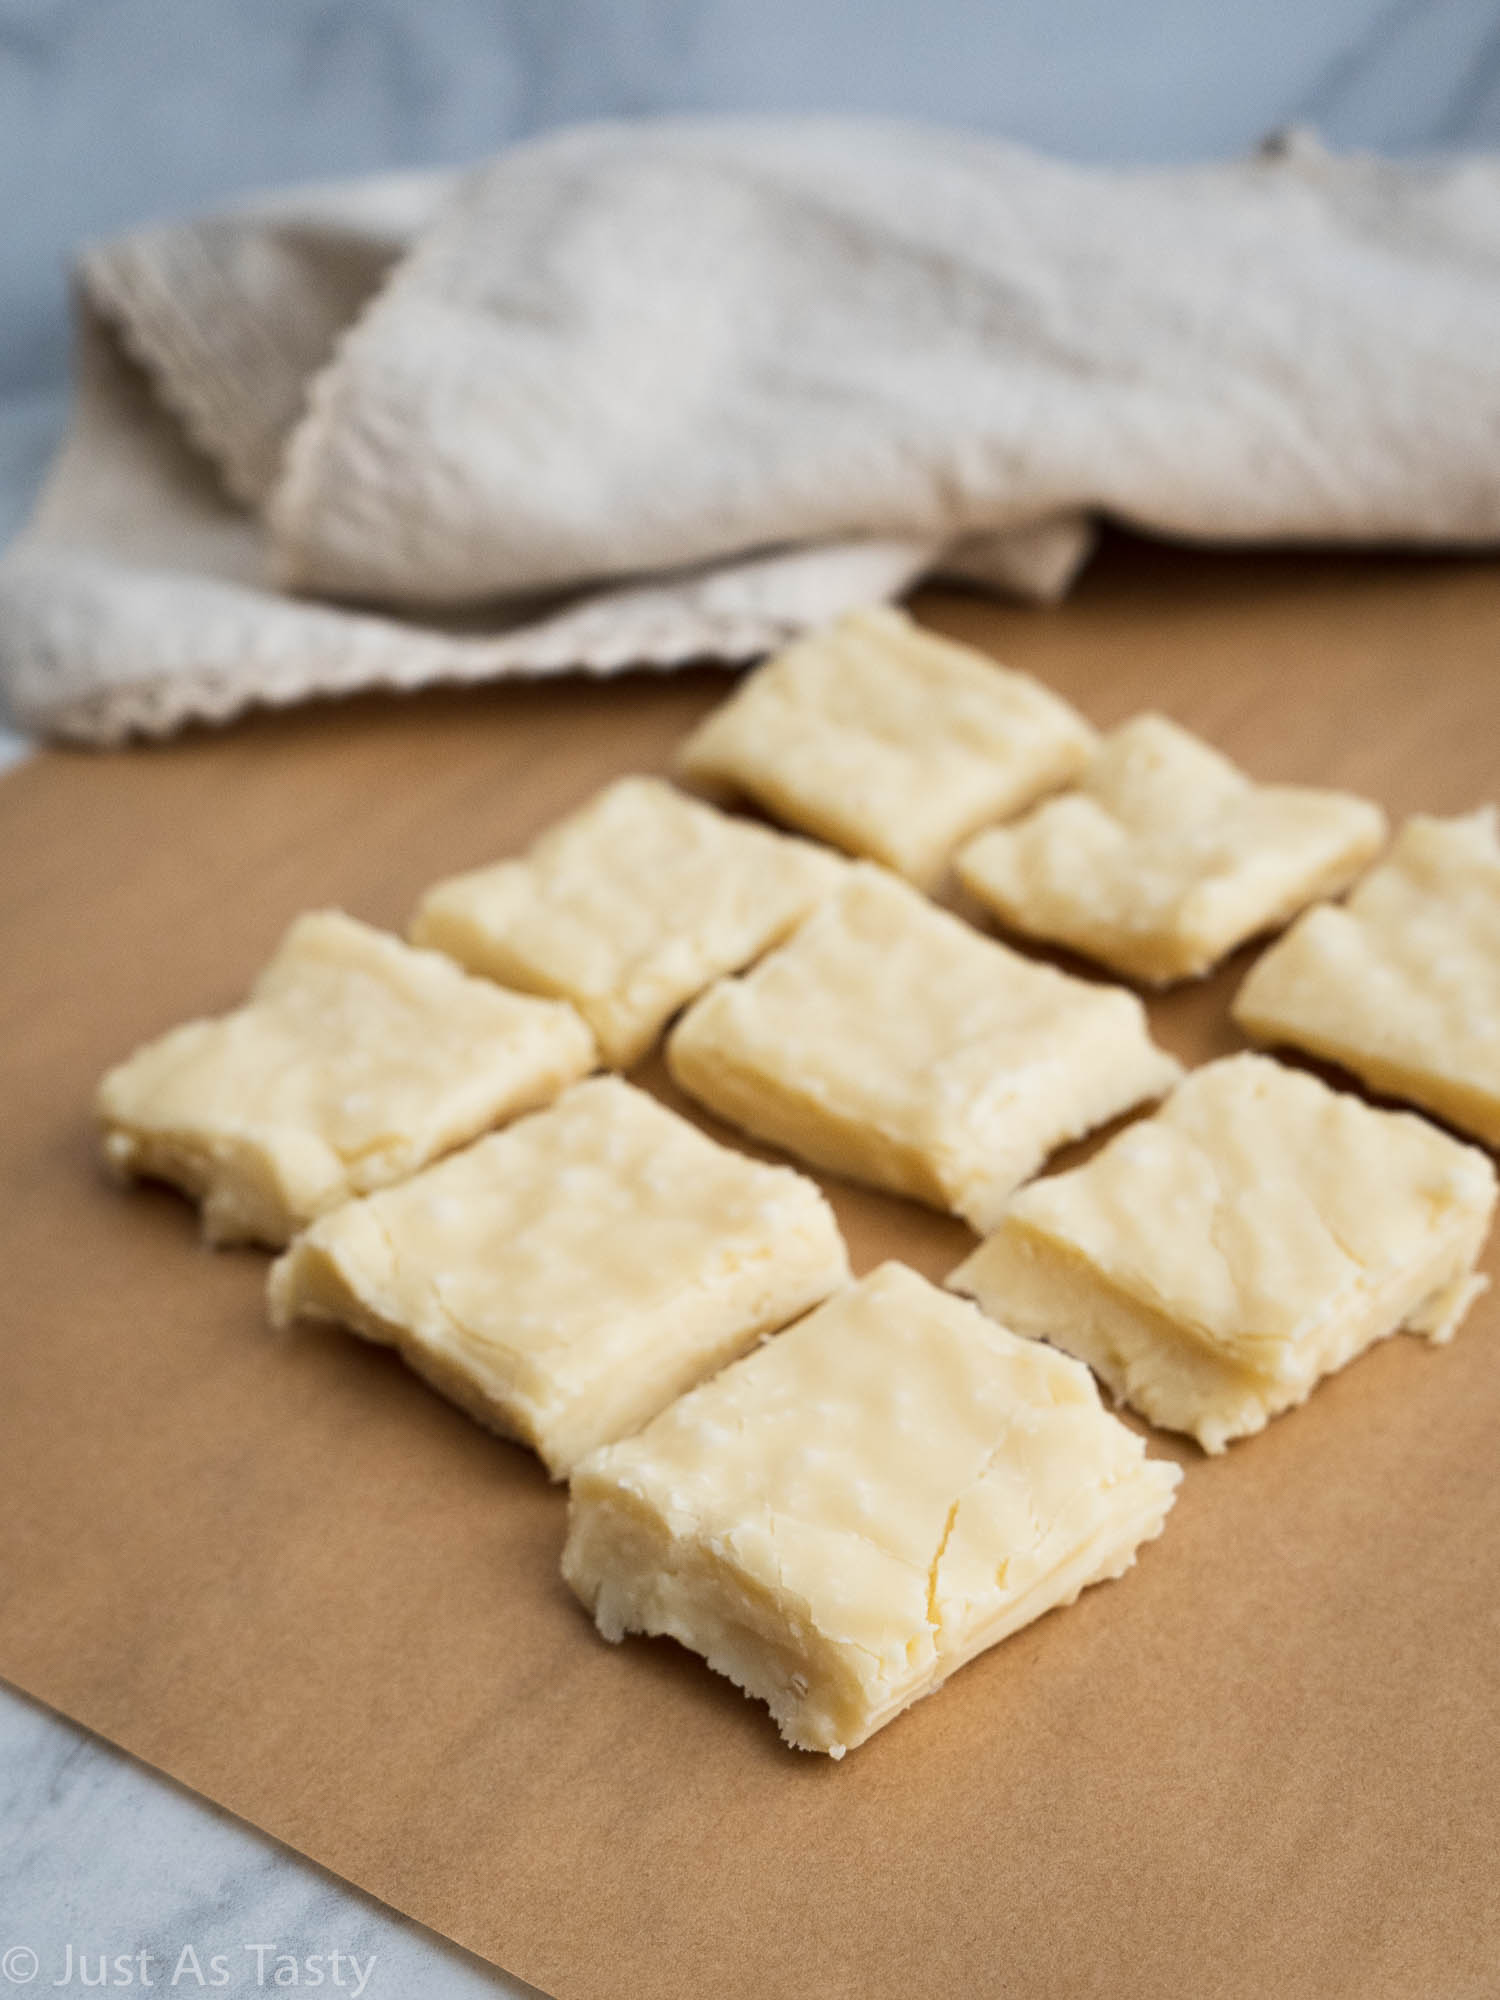 Sliced up fudge on brown parchment paper.